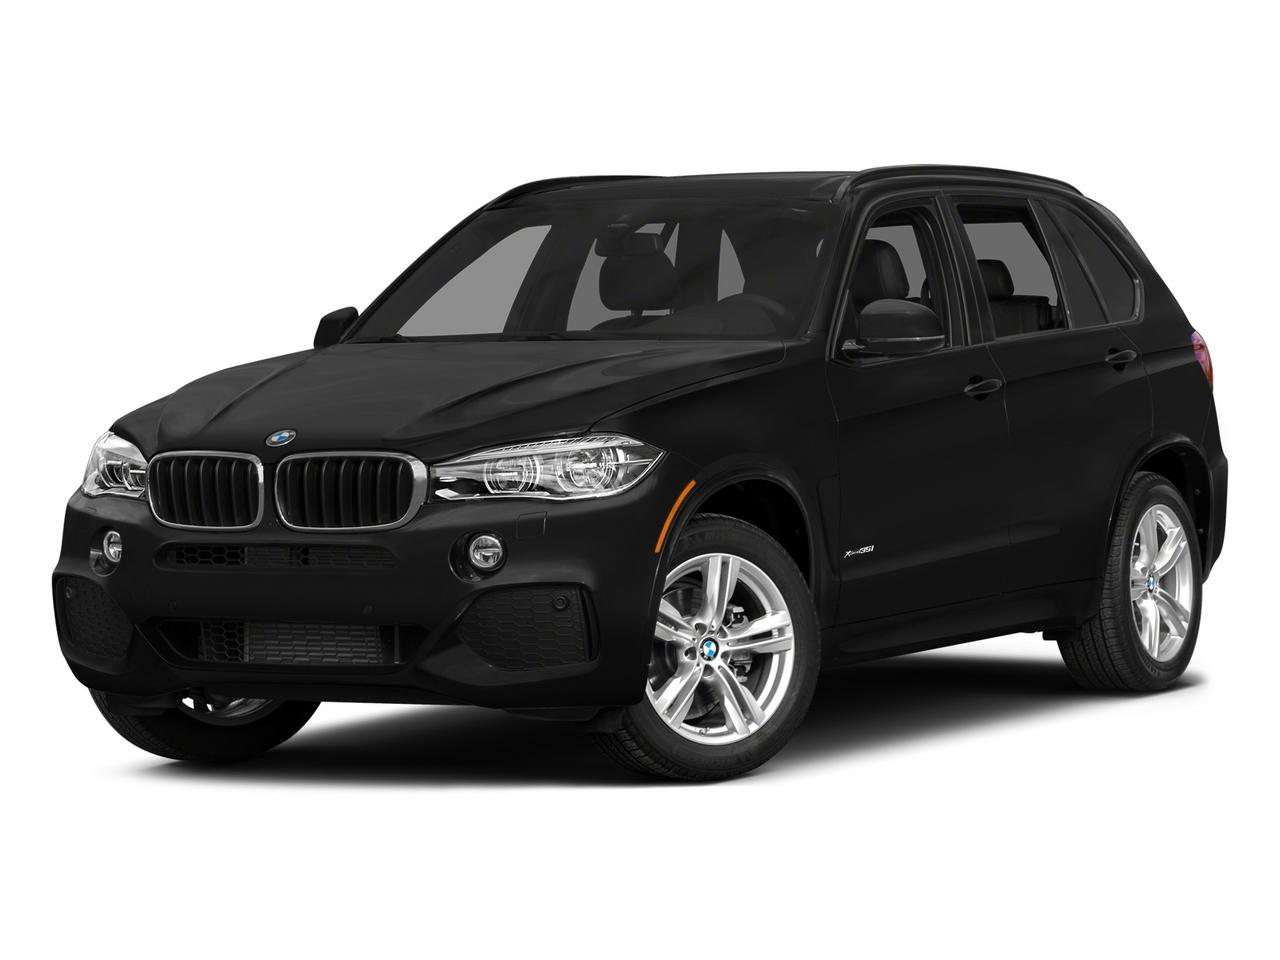 2015 BMW X5 xDrive35d Vehicle Photo in Raleigh, NC 27609